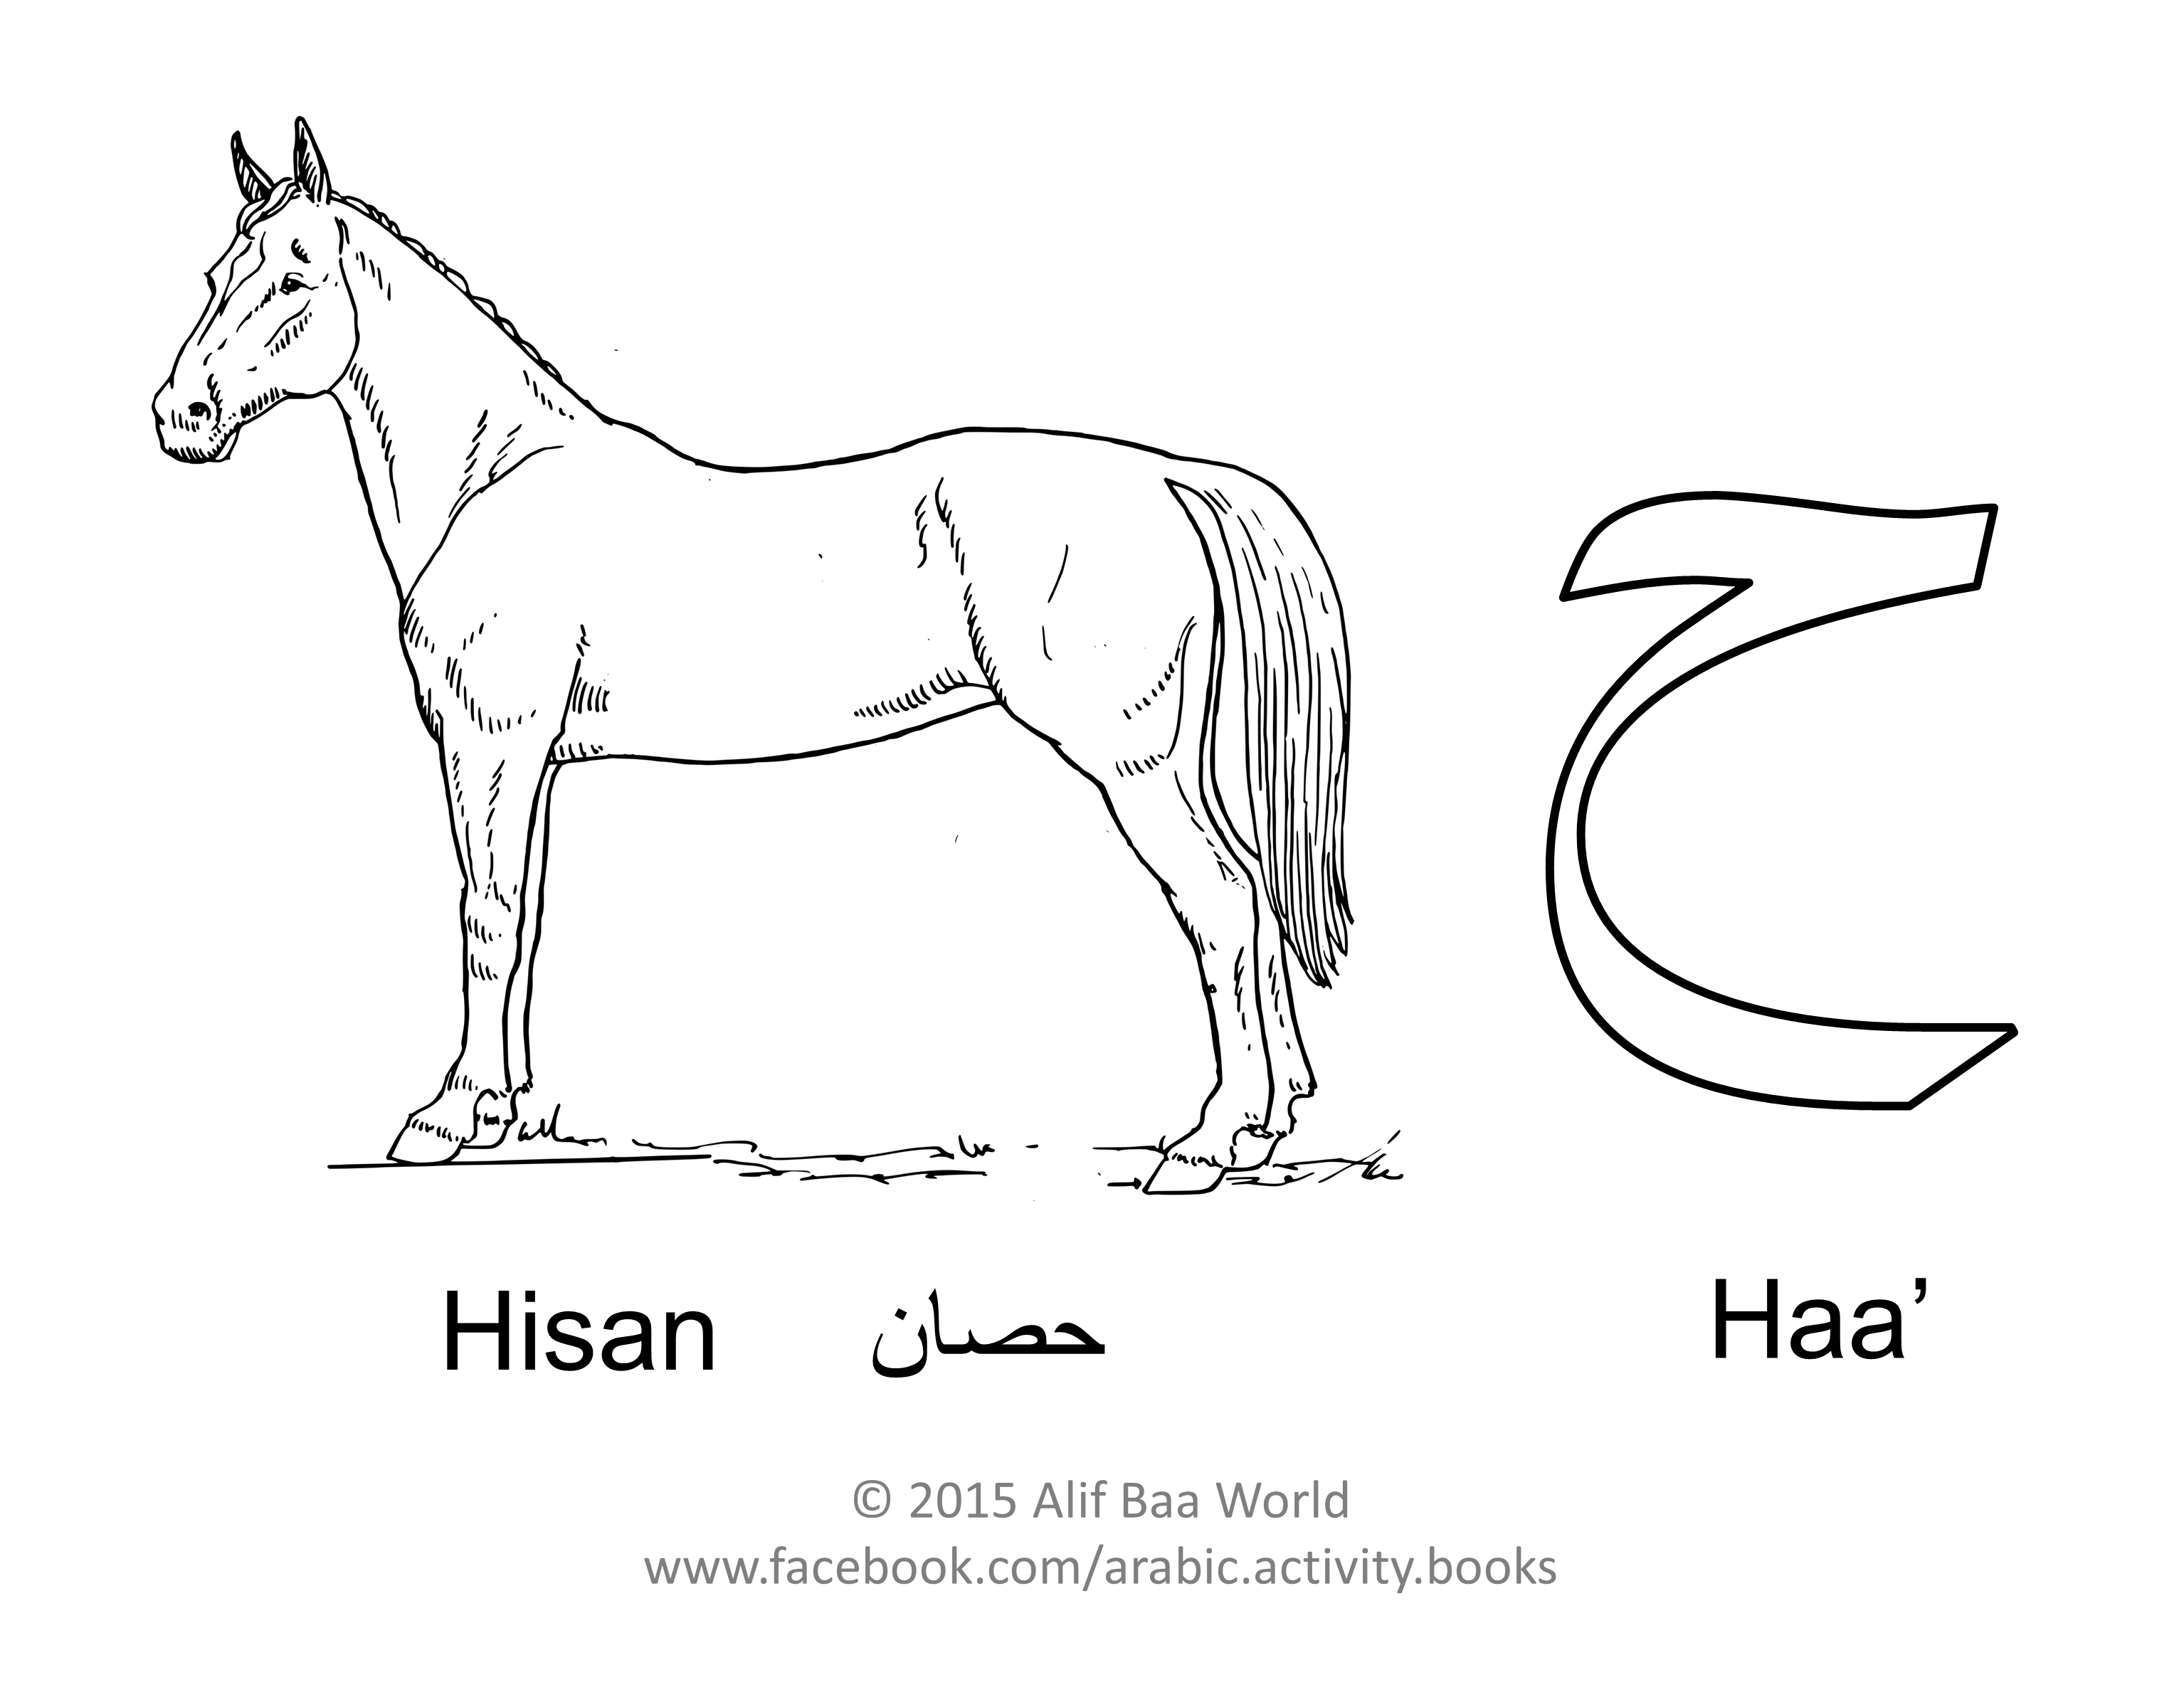 Arabic alphabet for kids with cute animals and fruit for each letter - The Sixth Letter Of The Arabic Alphabet Is Name Haa Sound H For Pronounced Hisan English Horse Print And Color The Letter The Animal